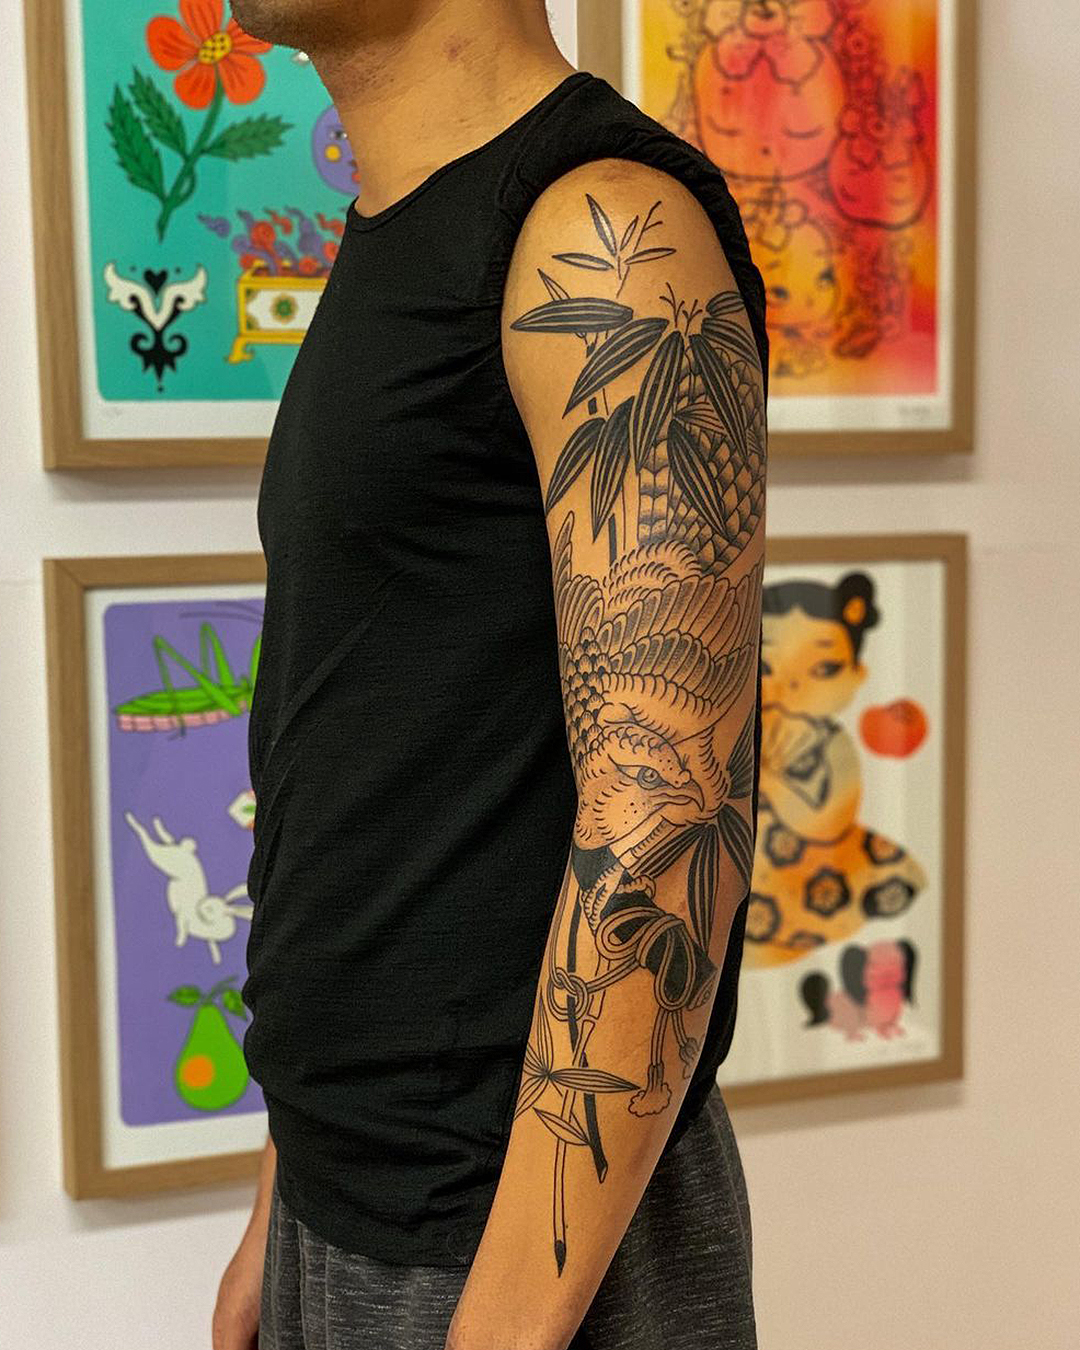 A person displays their sleeve from Love & Hope Tattoo Parlour.